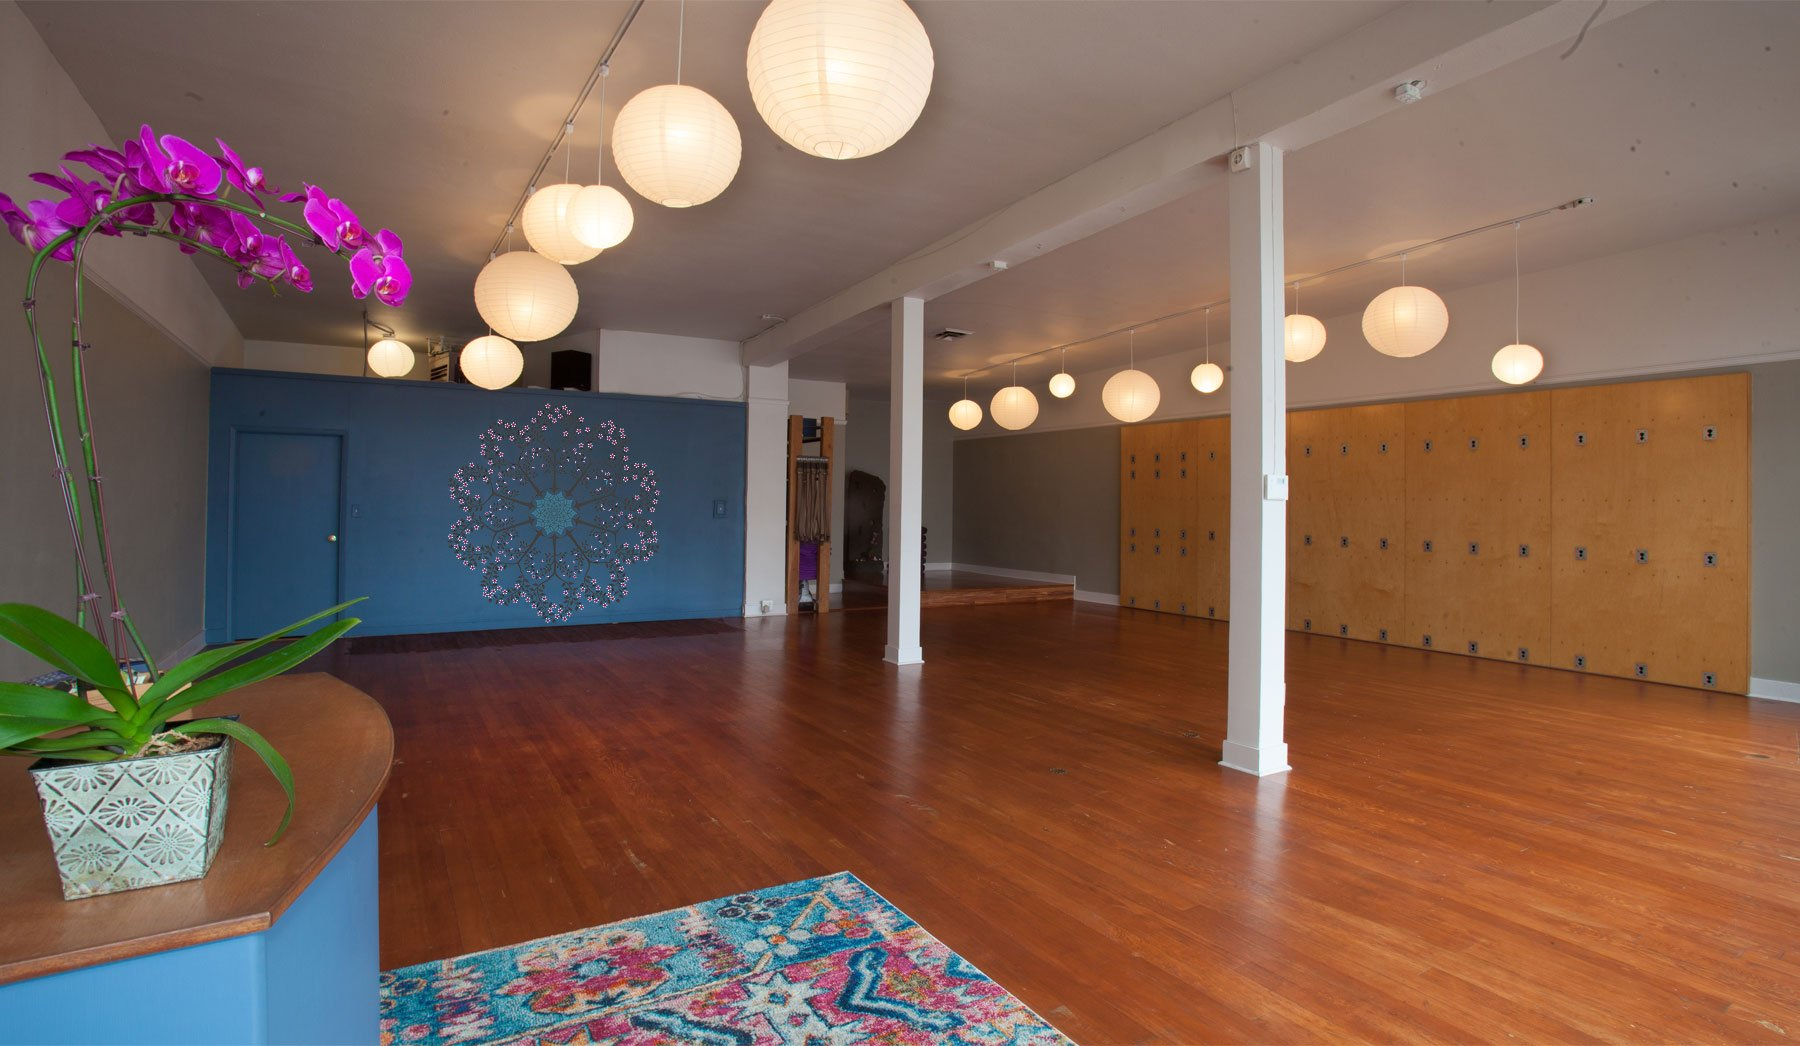 Yoga On Beacon Yoga Studio Seattle Wa Yoga Classes For All Levels And Abilities